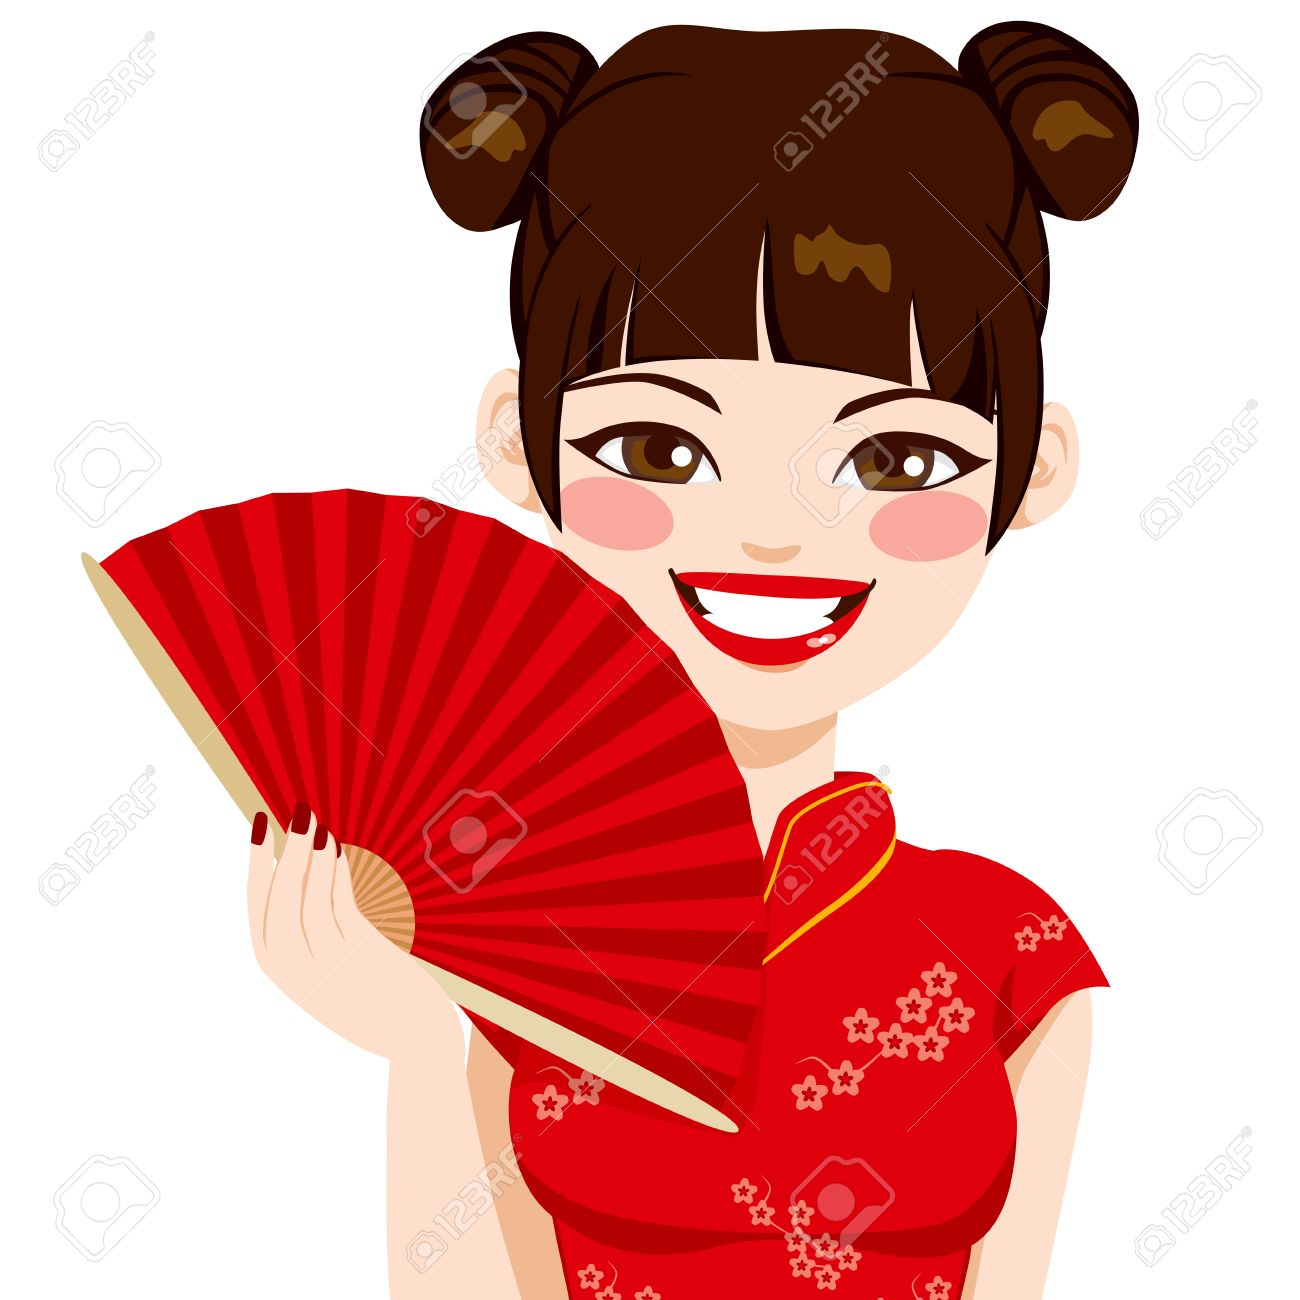 Beautiful brunette chinese woman holding red fan smiling happy Stock Vector - 27456547